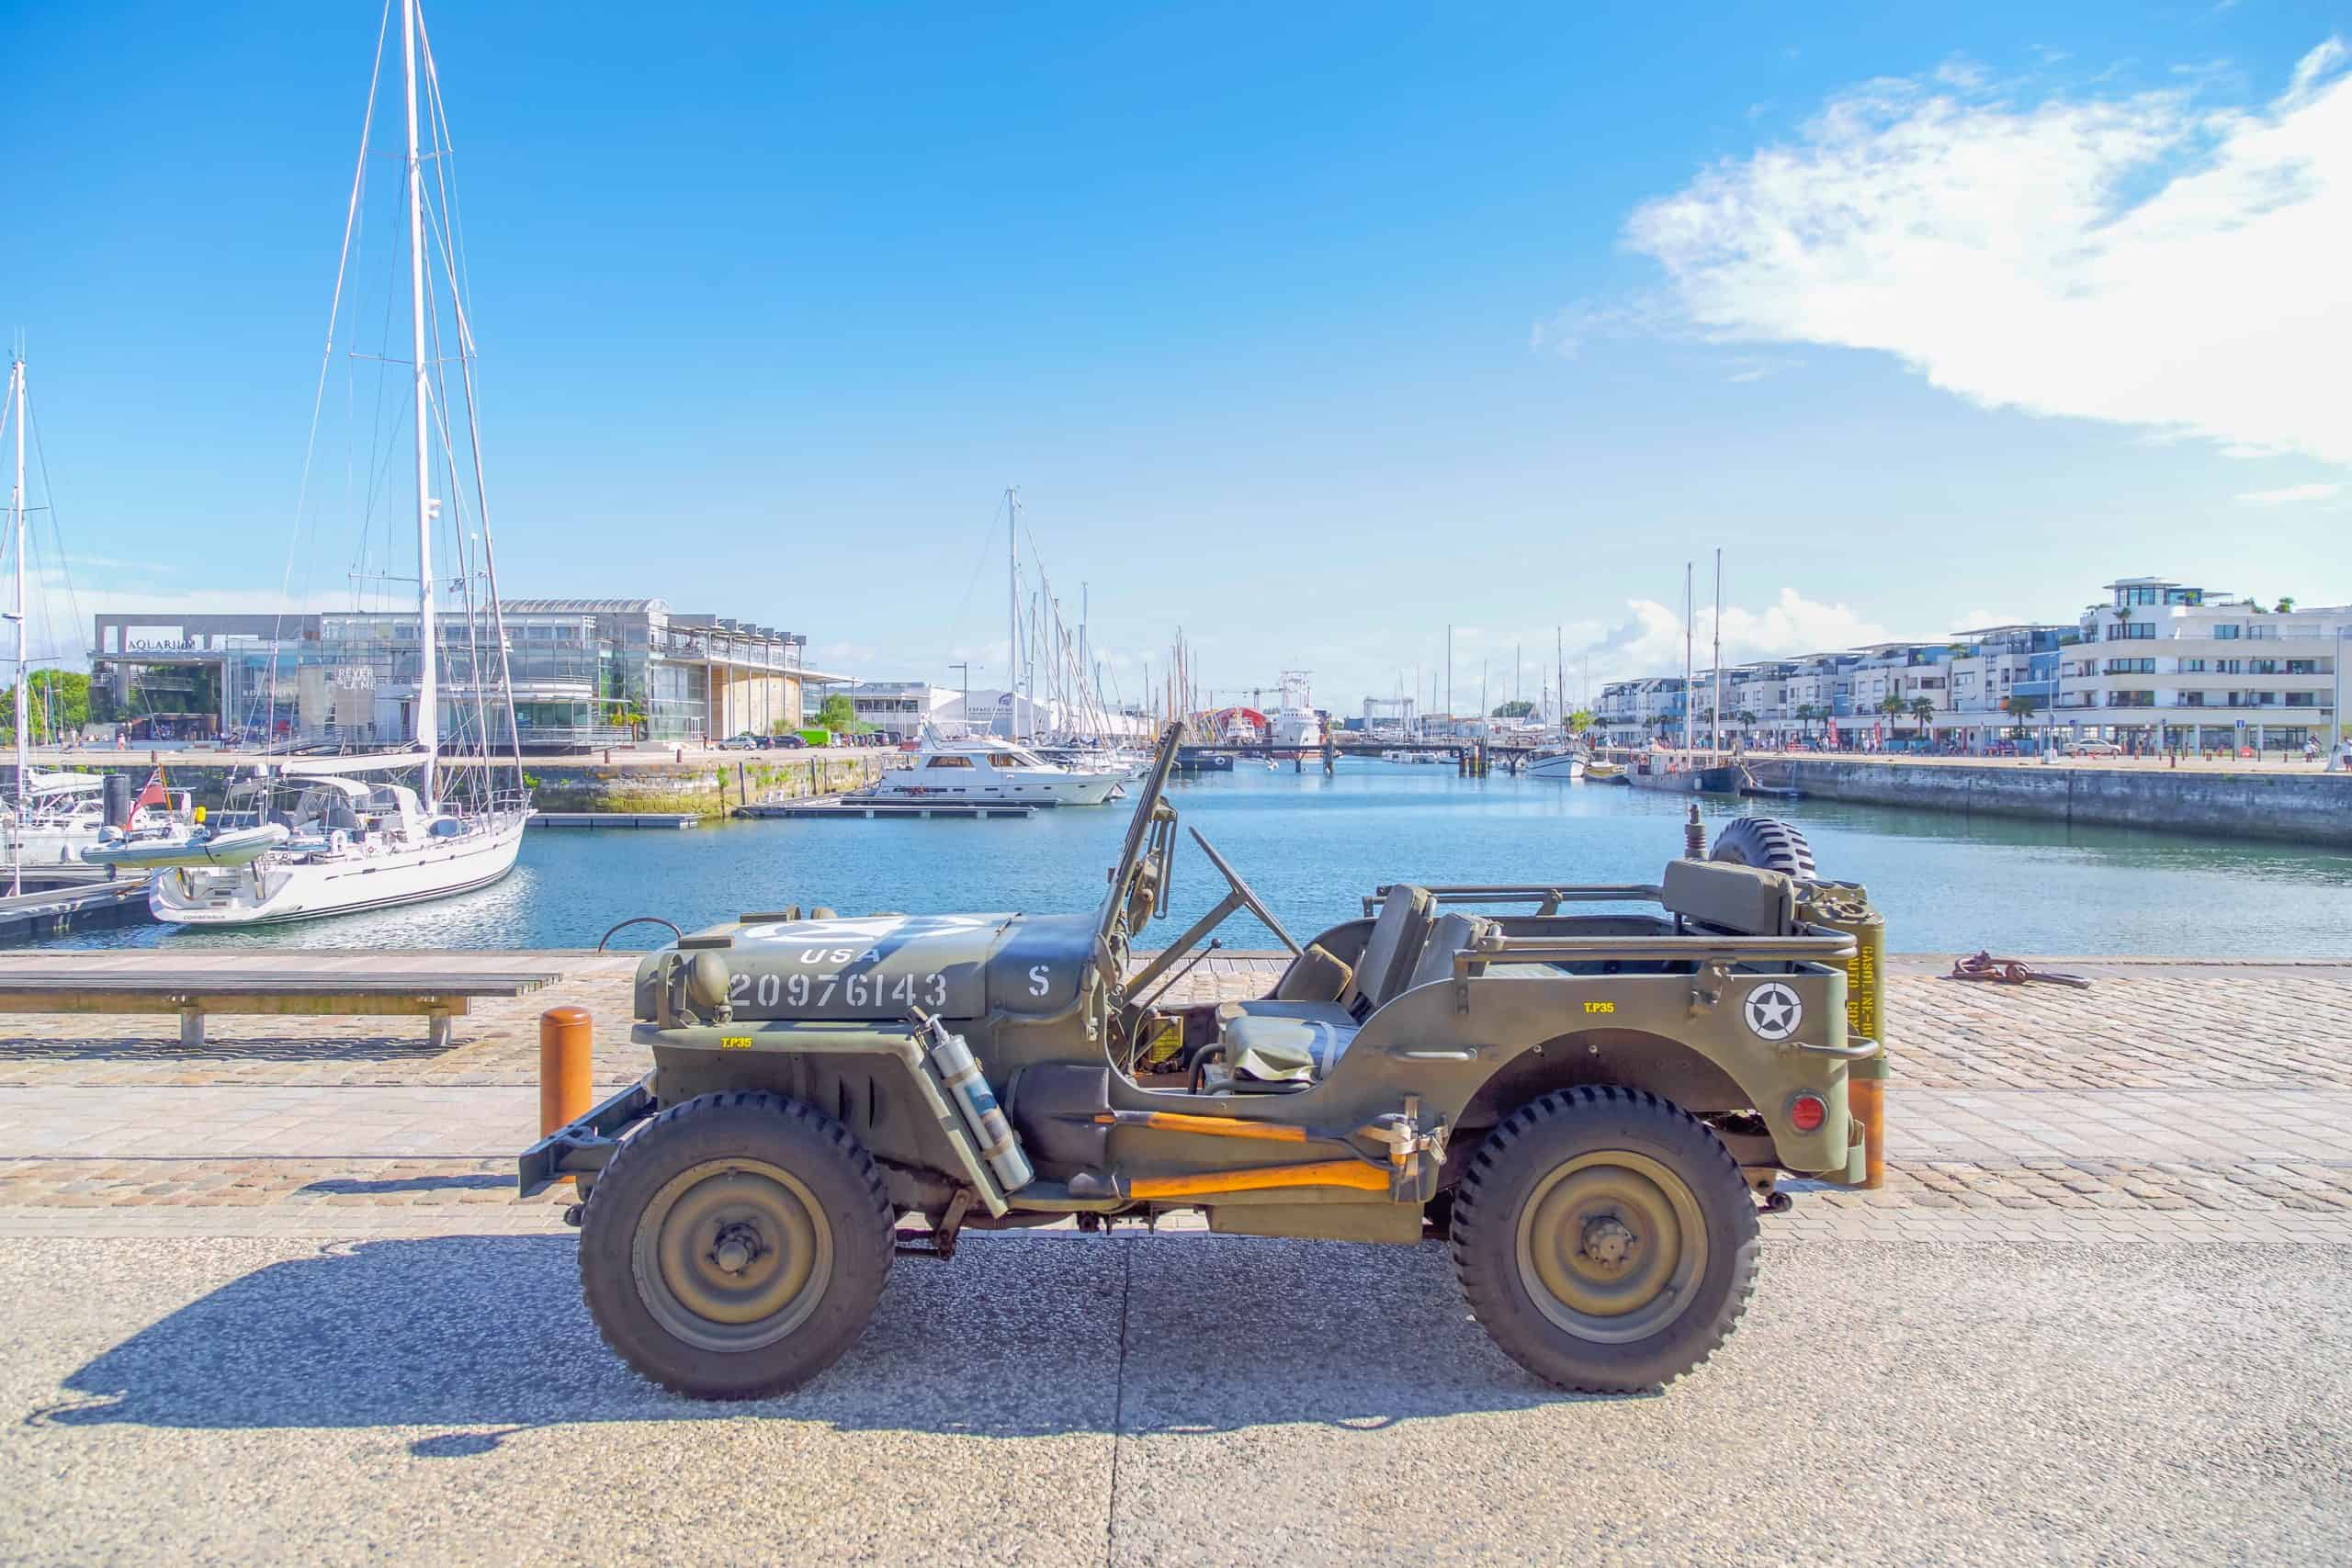 All Terrain Vehicle Products